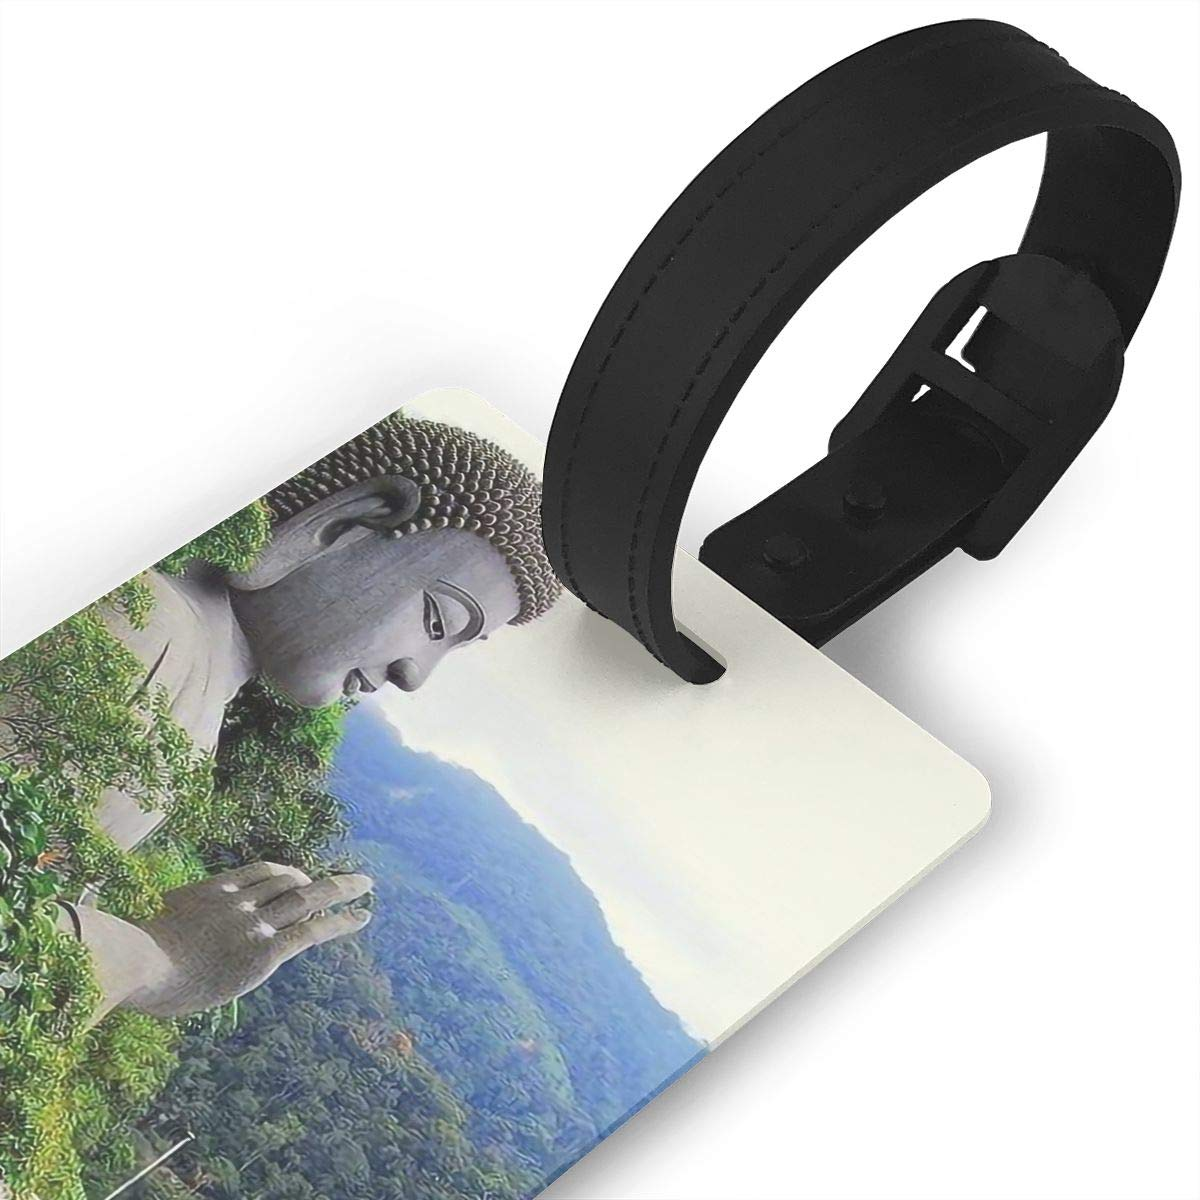 Buddhism Cruise Luggage Tag For Travel Tags Accessories 2 Pack Luggage Tags